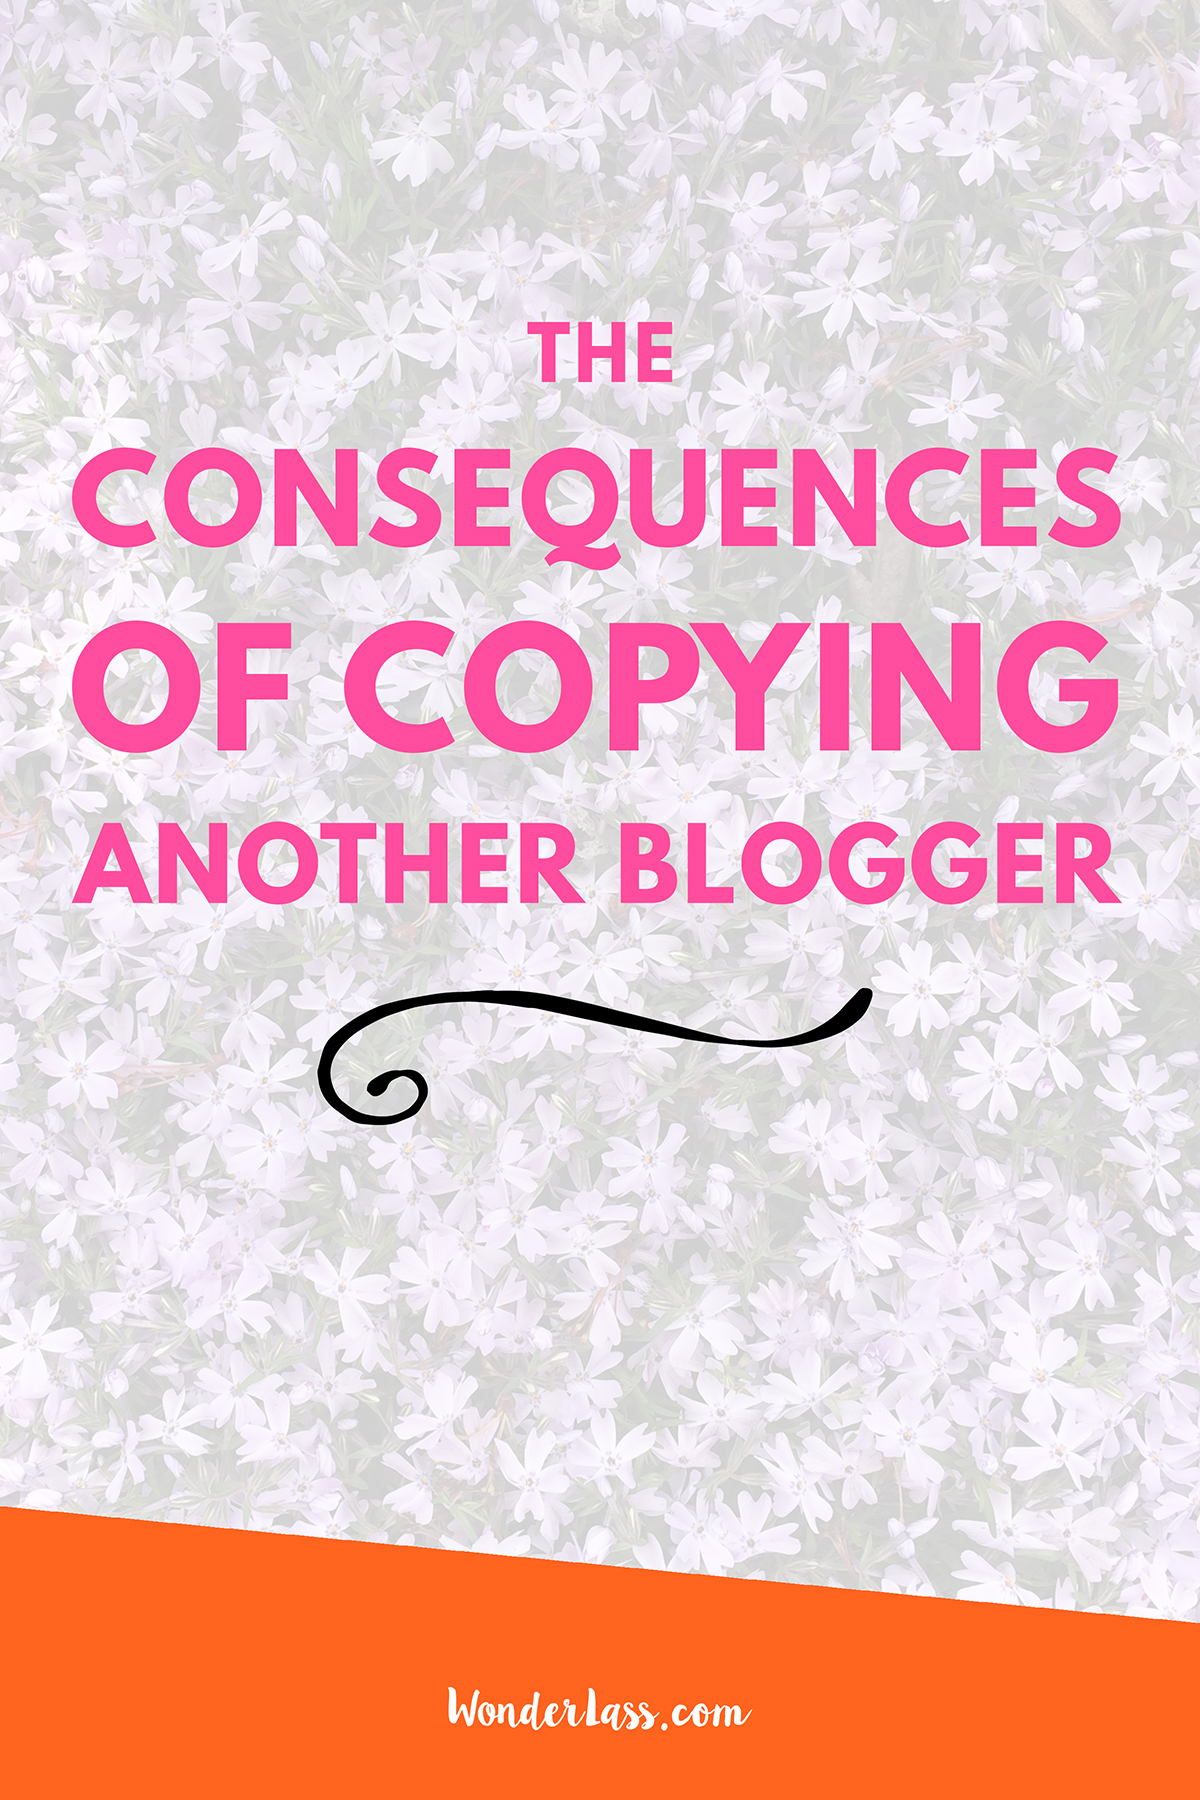 My Biggest Blogging Mistake: The Consequences of Copying Another Blogger | Wonderlass